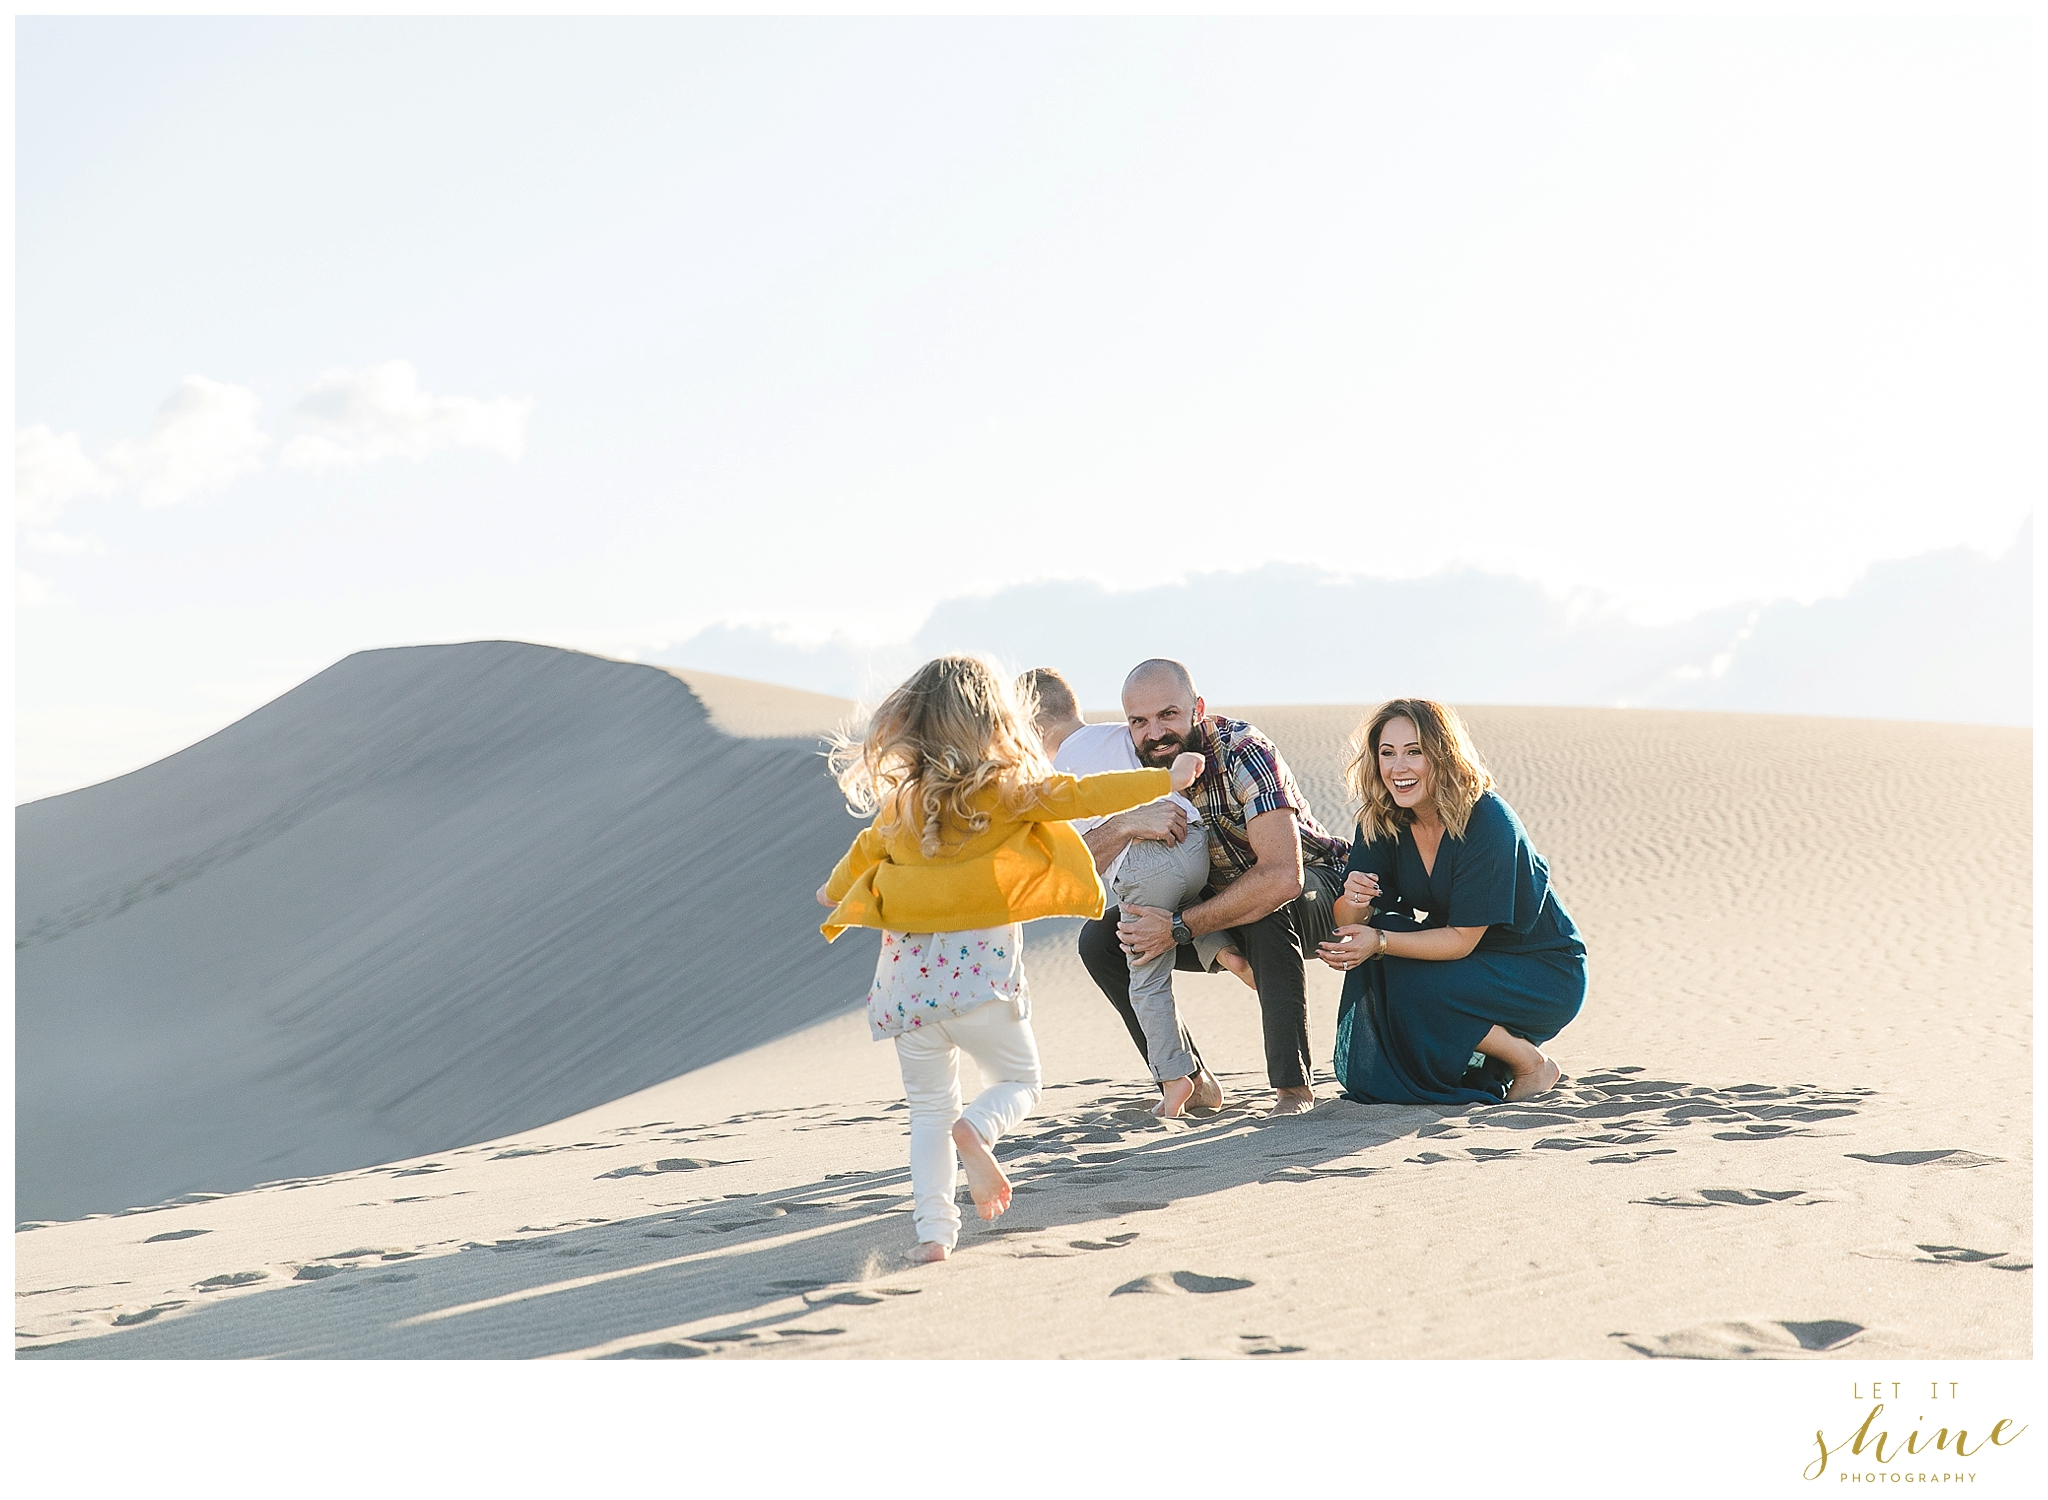 Bruneau Sand Dunes Family Session Let it shine Photography-5243.jpg